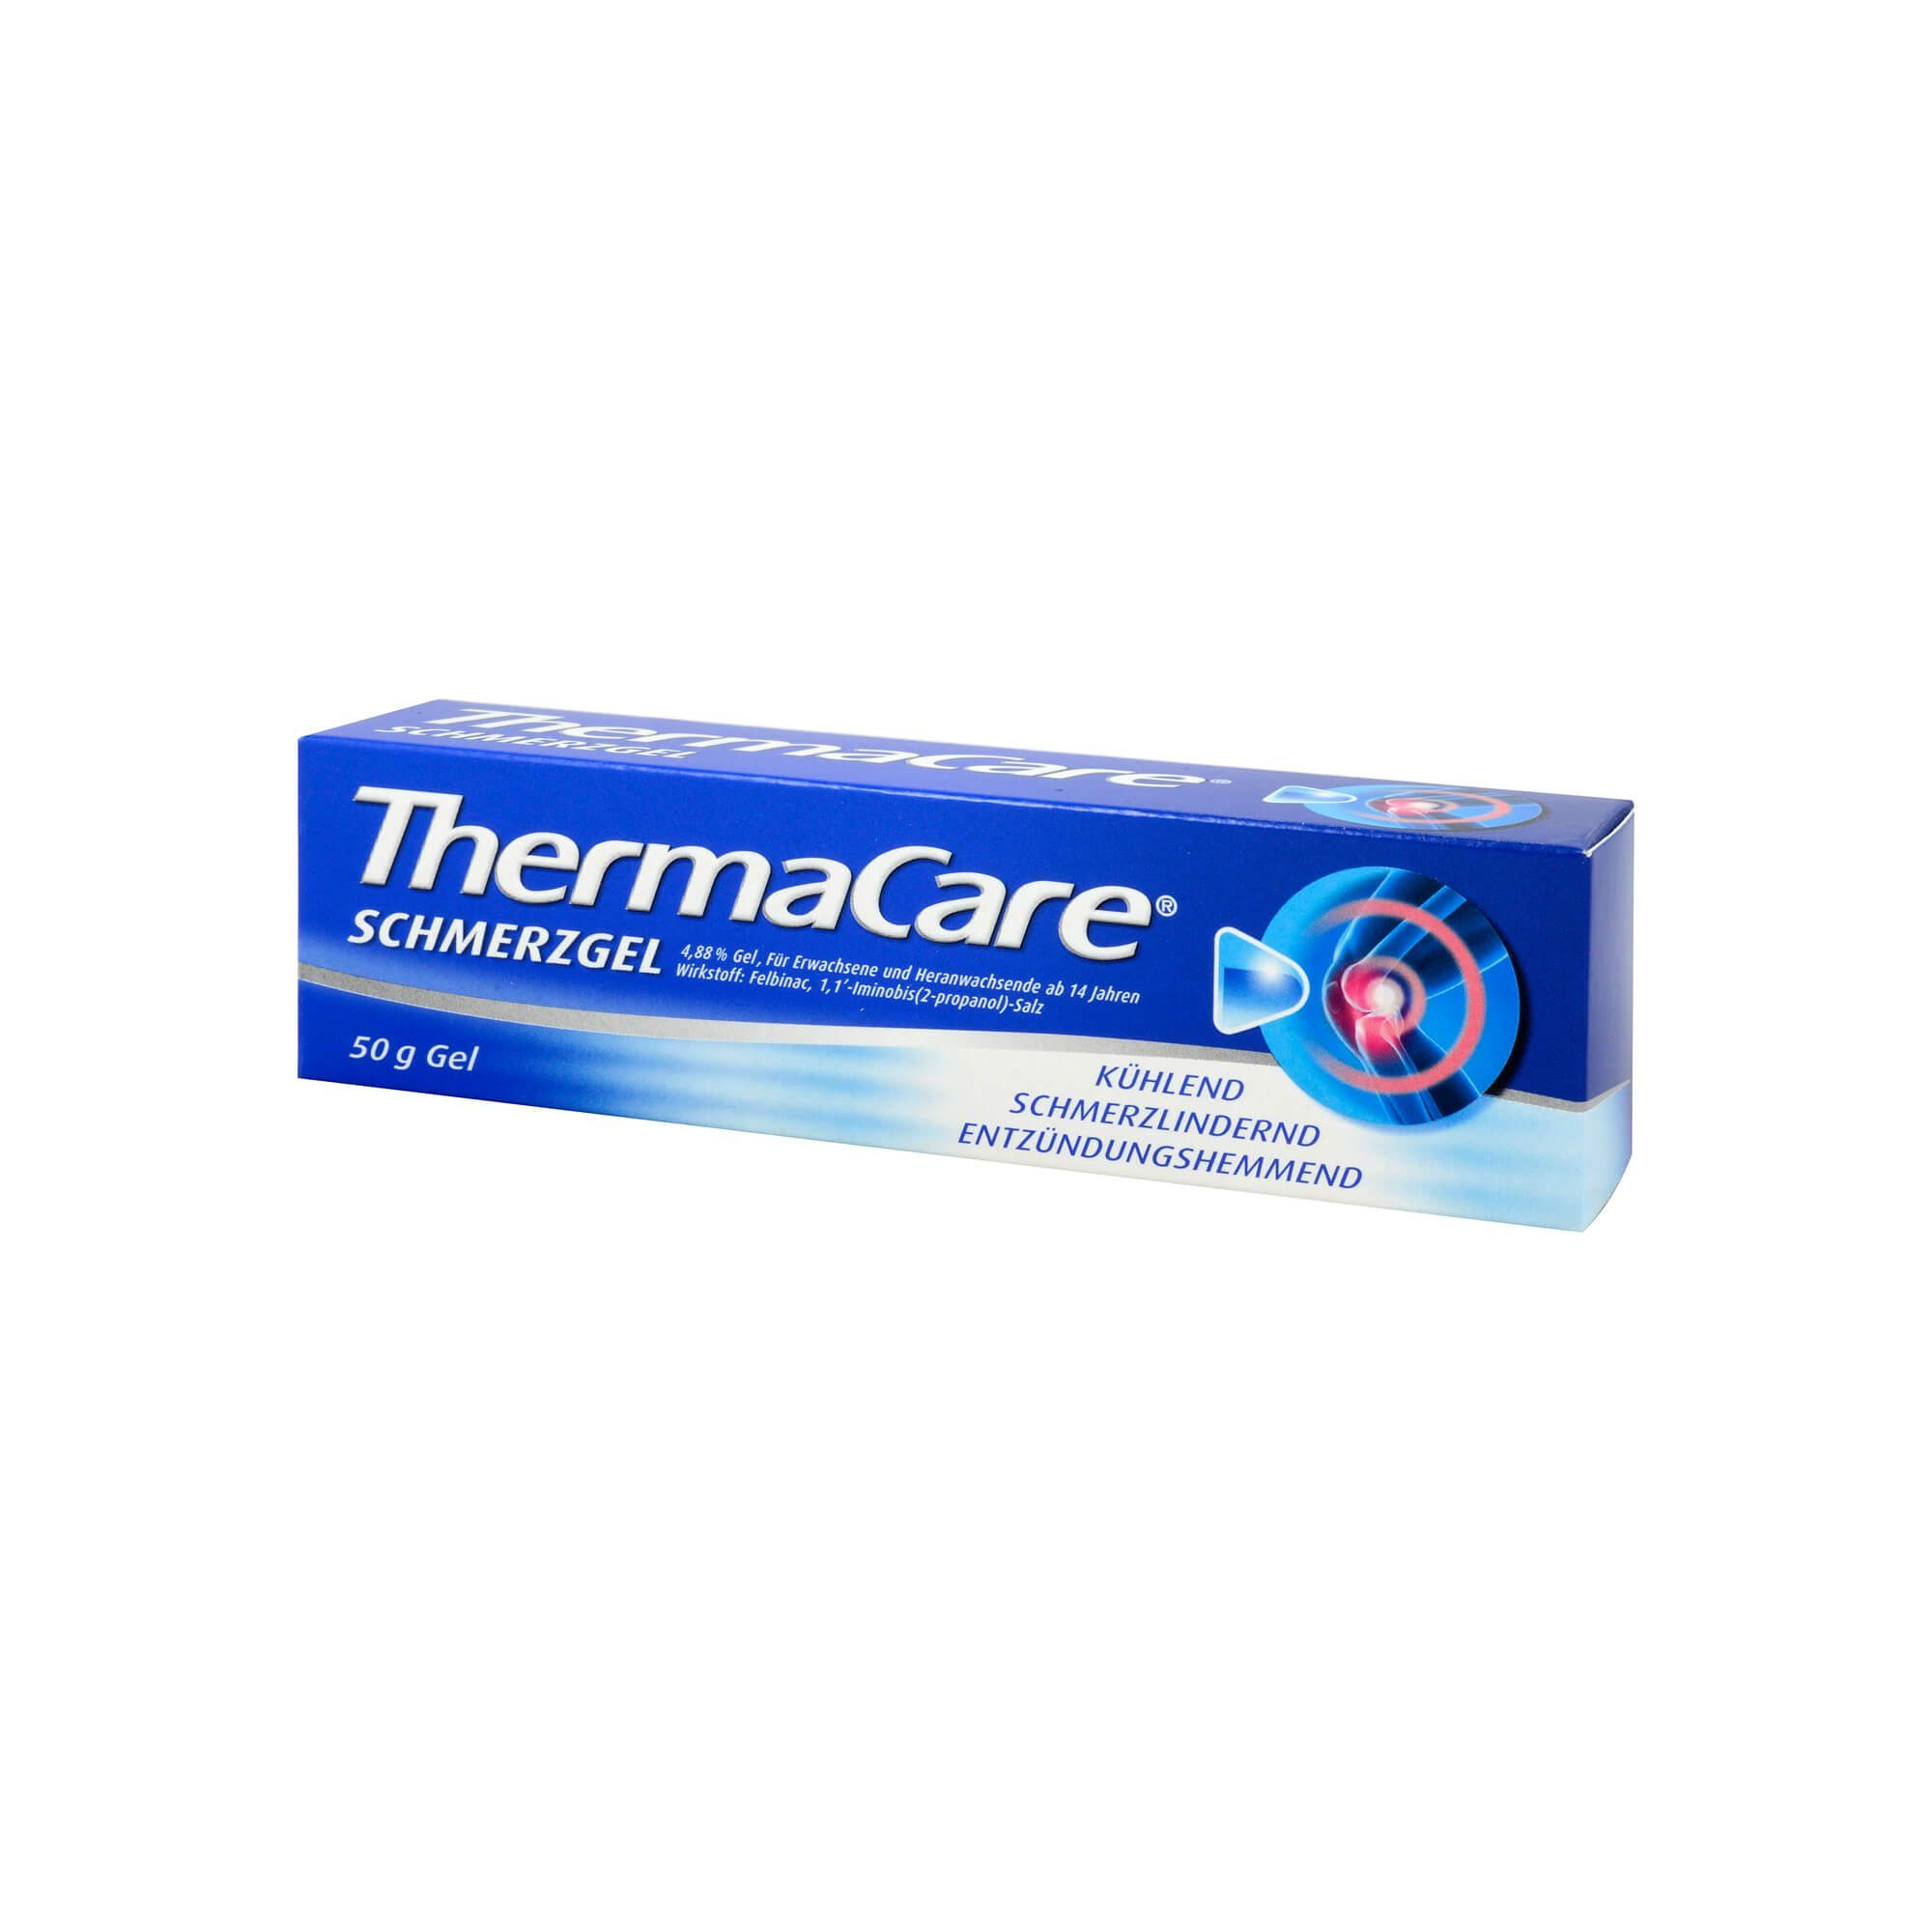 Thermacare ThermaCare Schmerzgel , 50 g